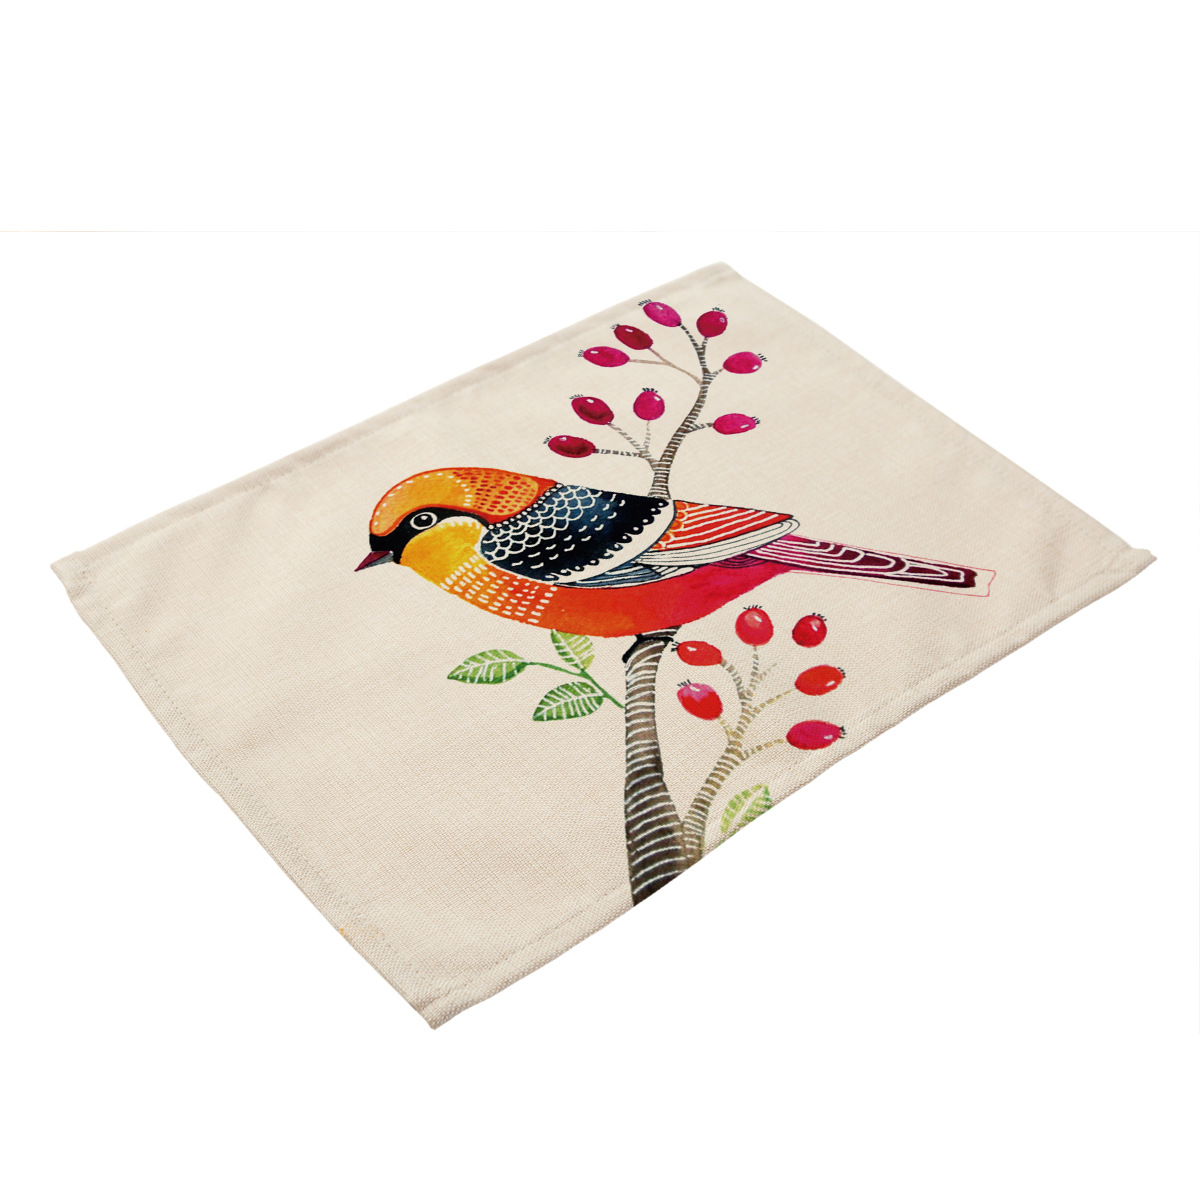 Bird Plant Flower Cactus Printing Cloth Table Mat Coaster Set Placemat Coasters Pad Mat Kitchen Accessories Decoration Home in Tablecloths from Home Garden